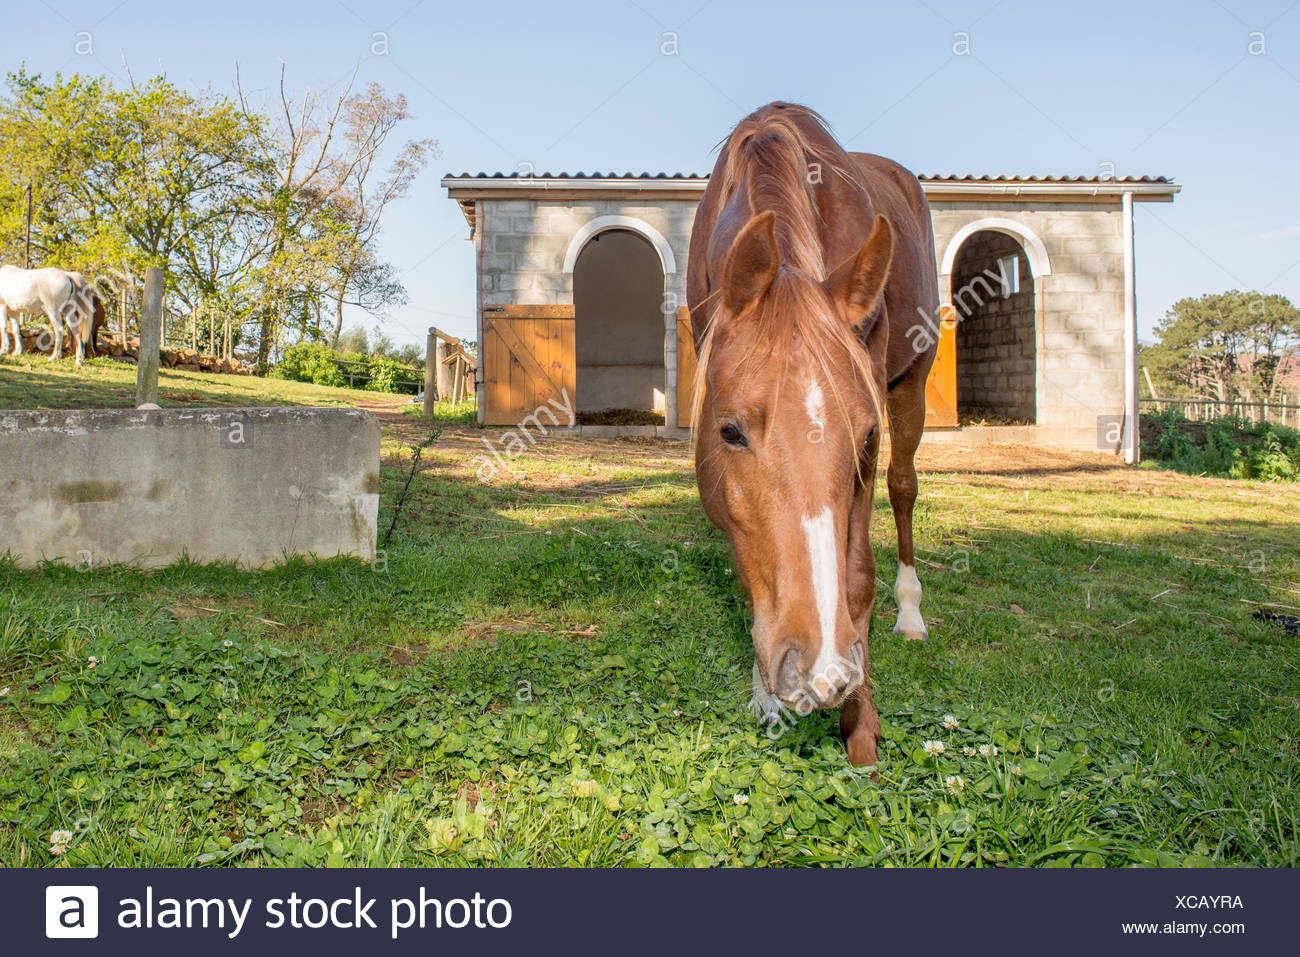 Horse by the Stables - Stock Image